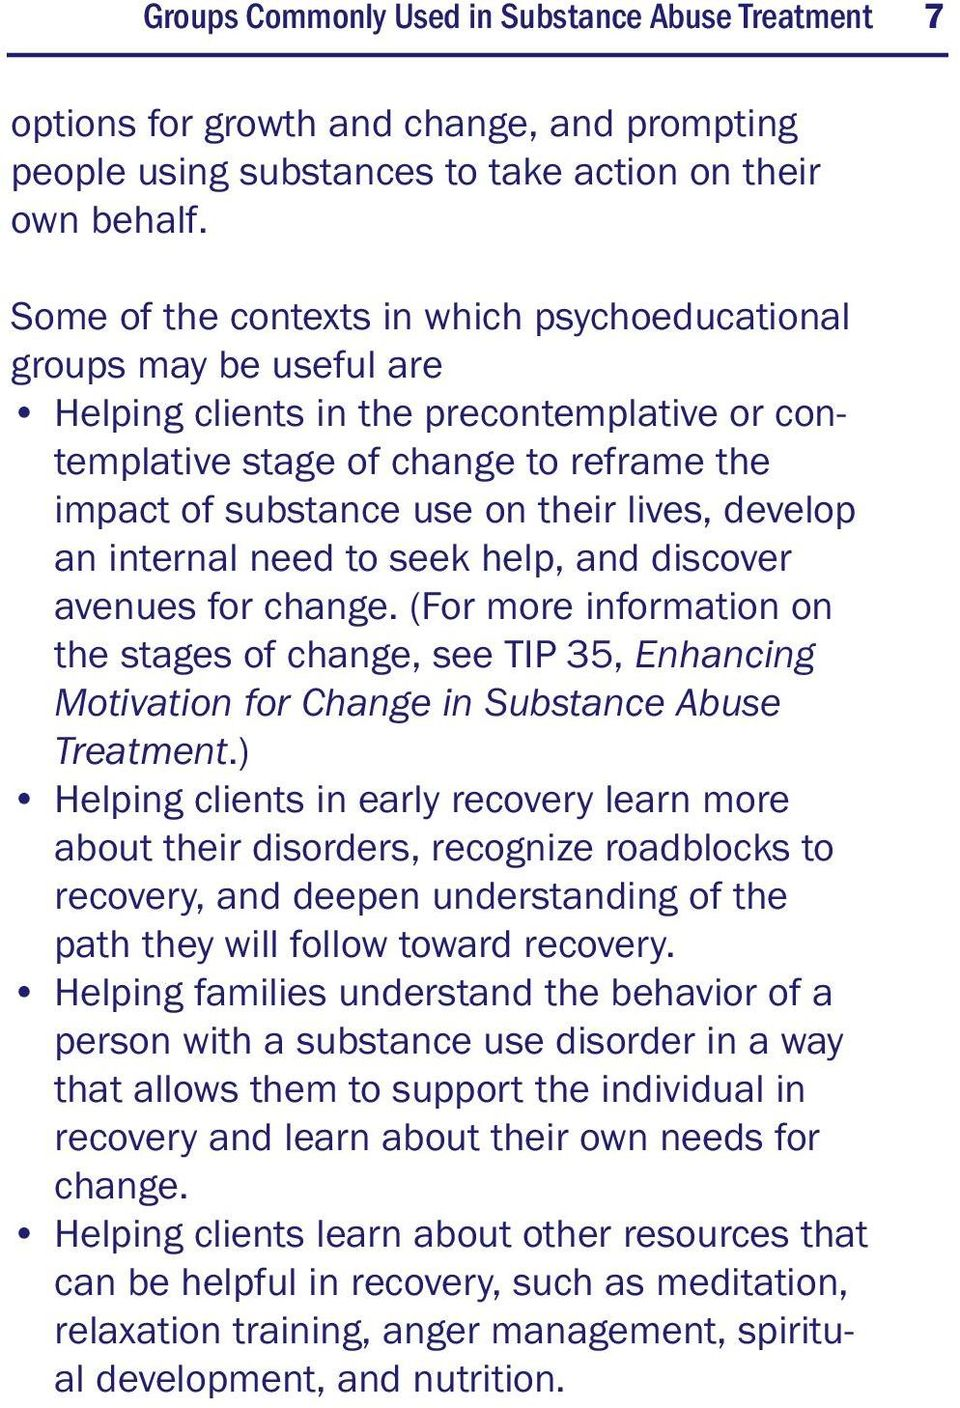 lives, develop an internal need to seek help, and discover avenues for change. (For more information on the stages of change, see TIP 35, Enhancing Motivation for Change in Substance Abuse Treatment.